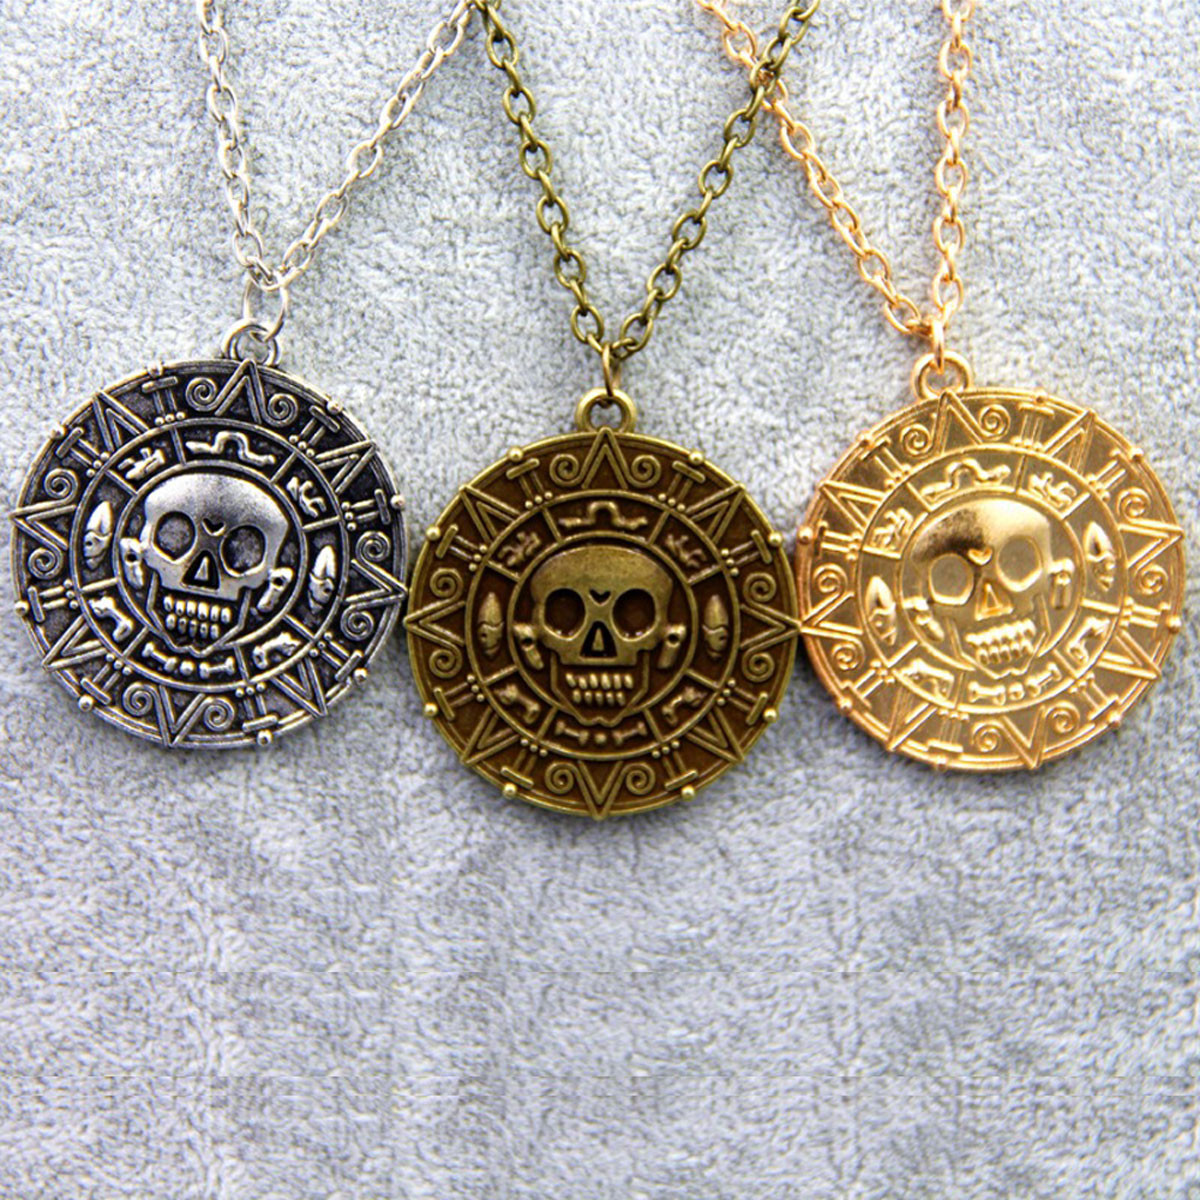 Vintage Pirates Necklace